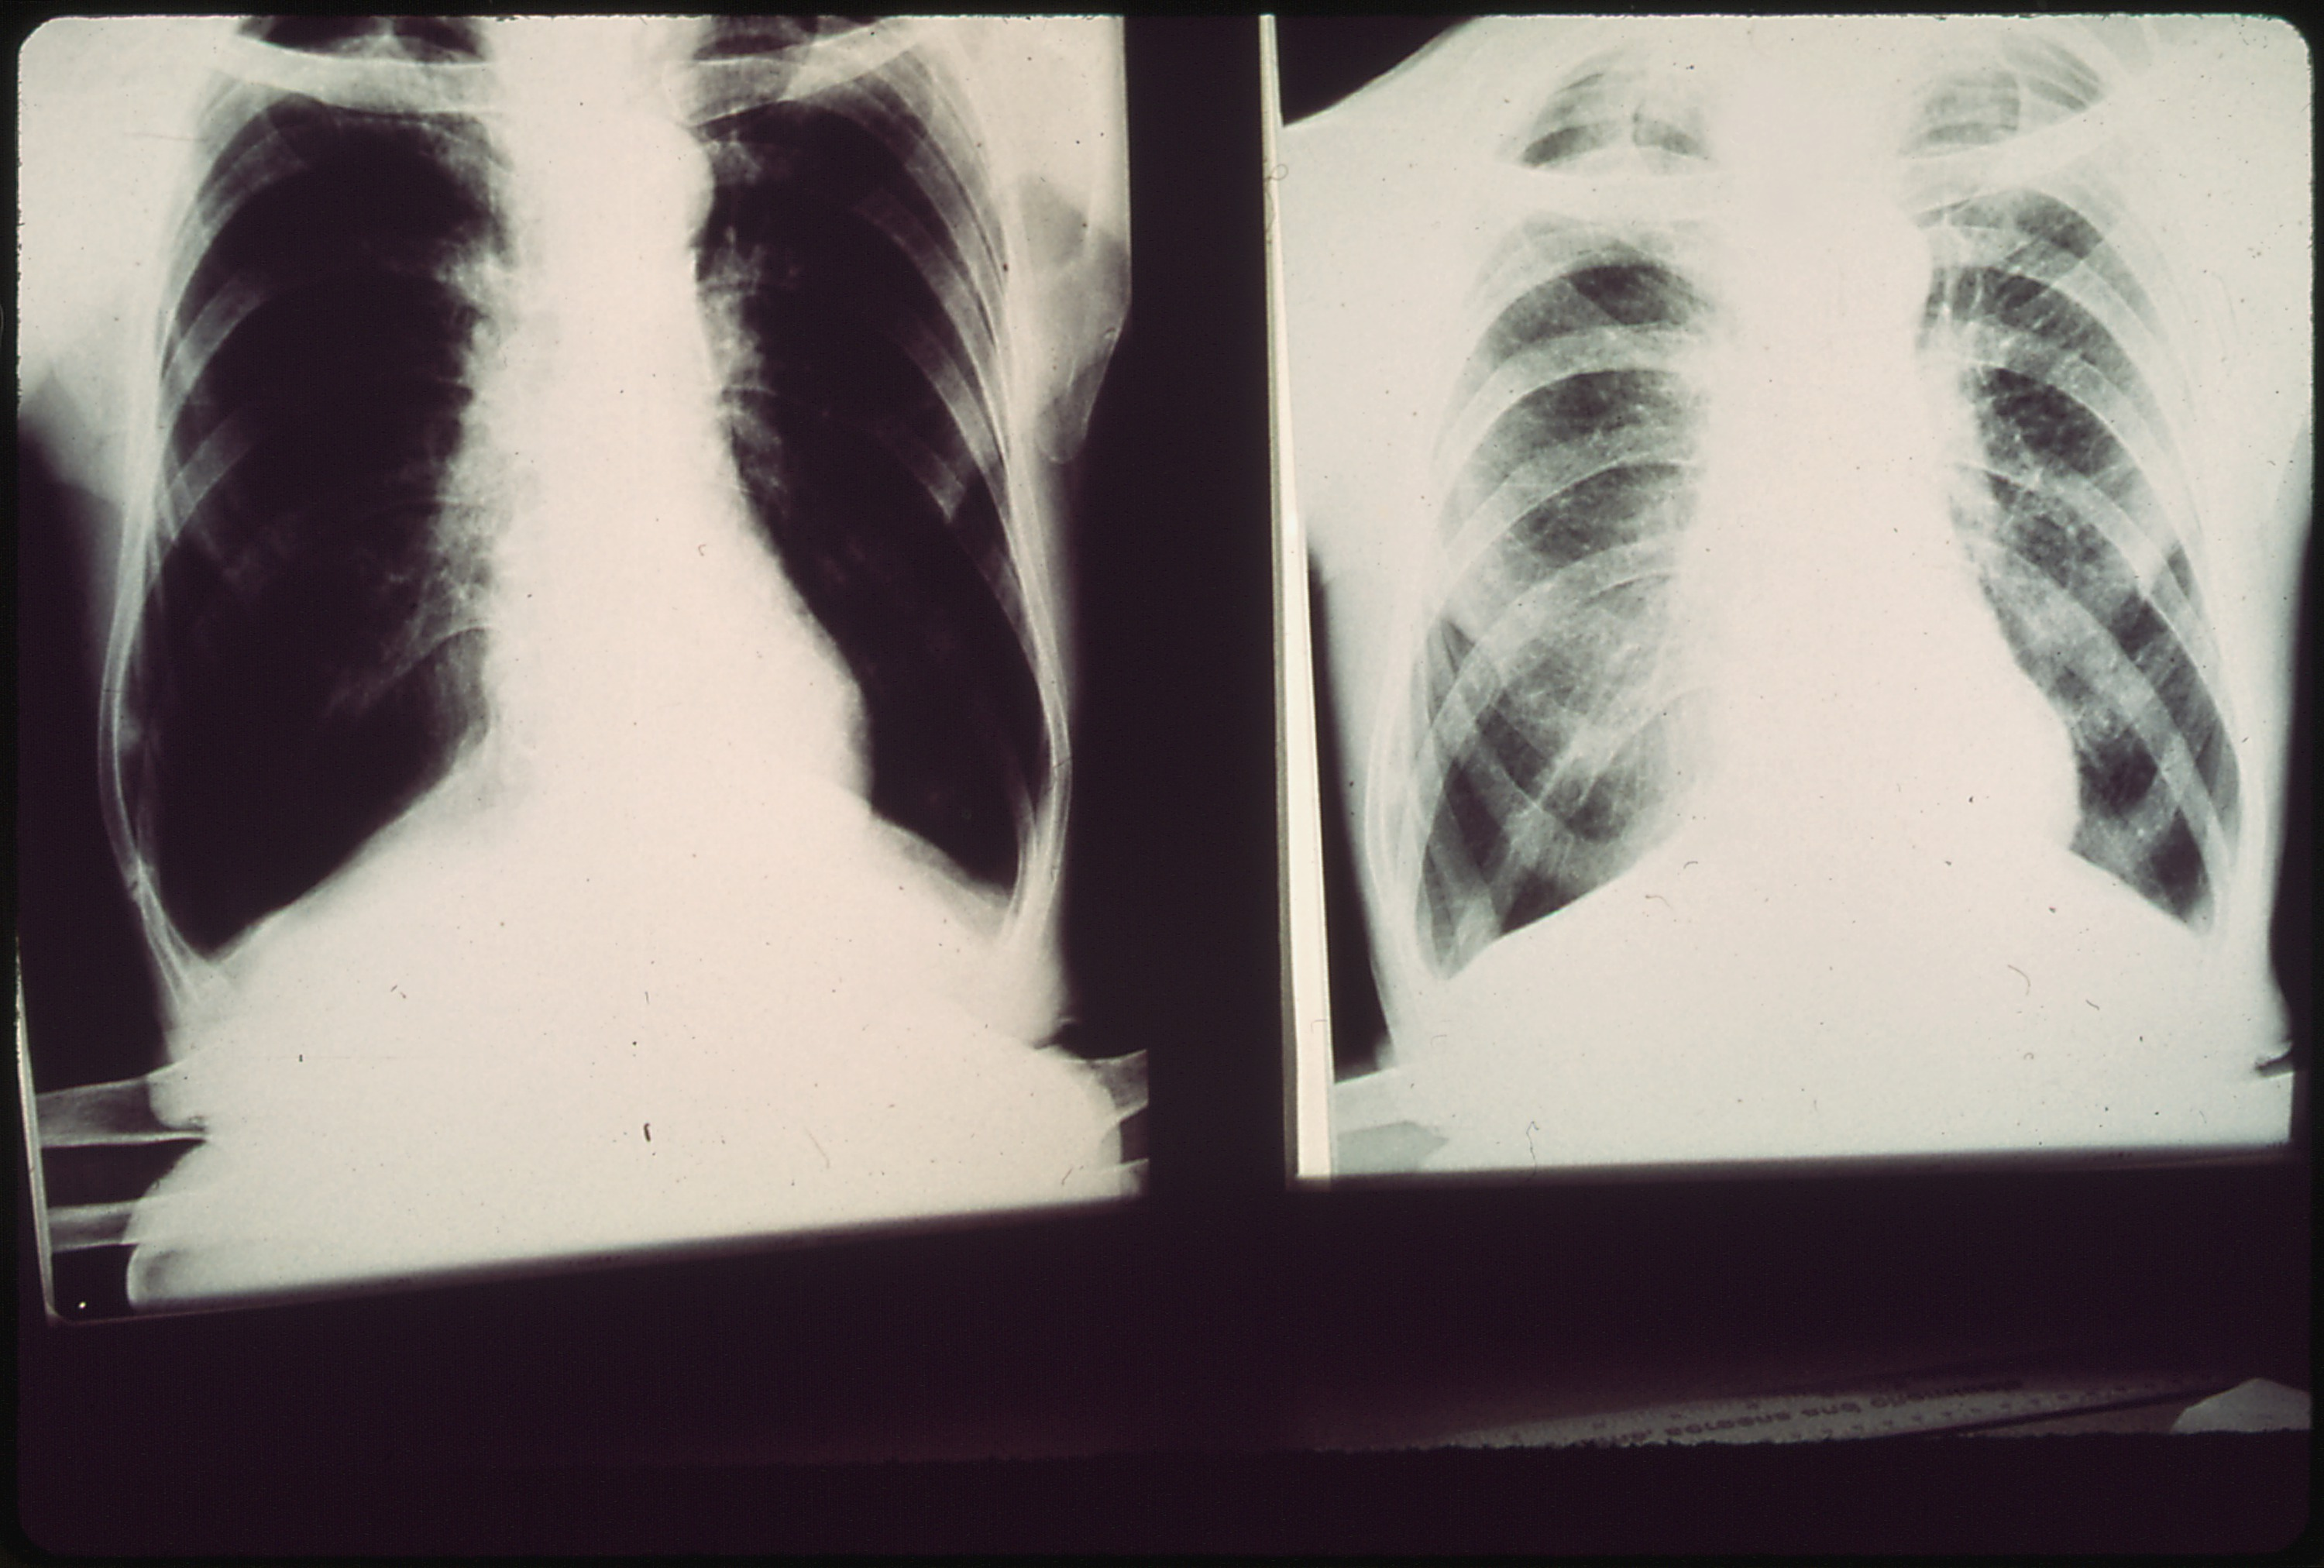 Black Lung Disease